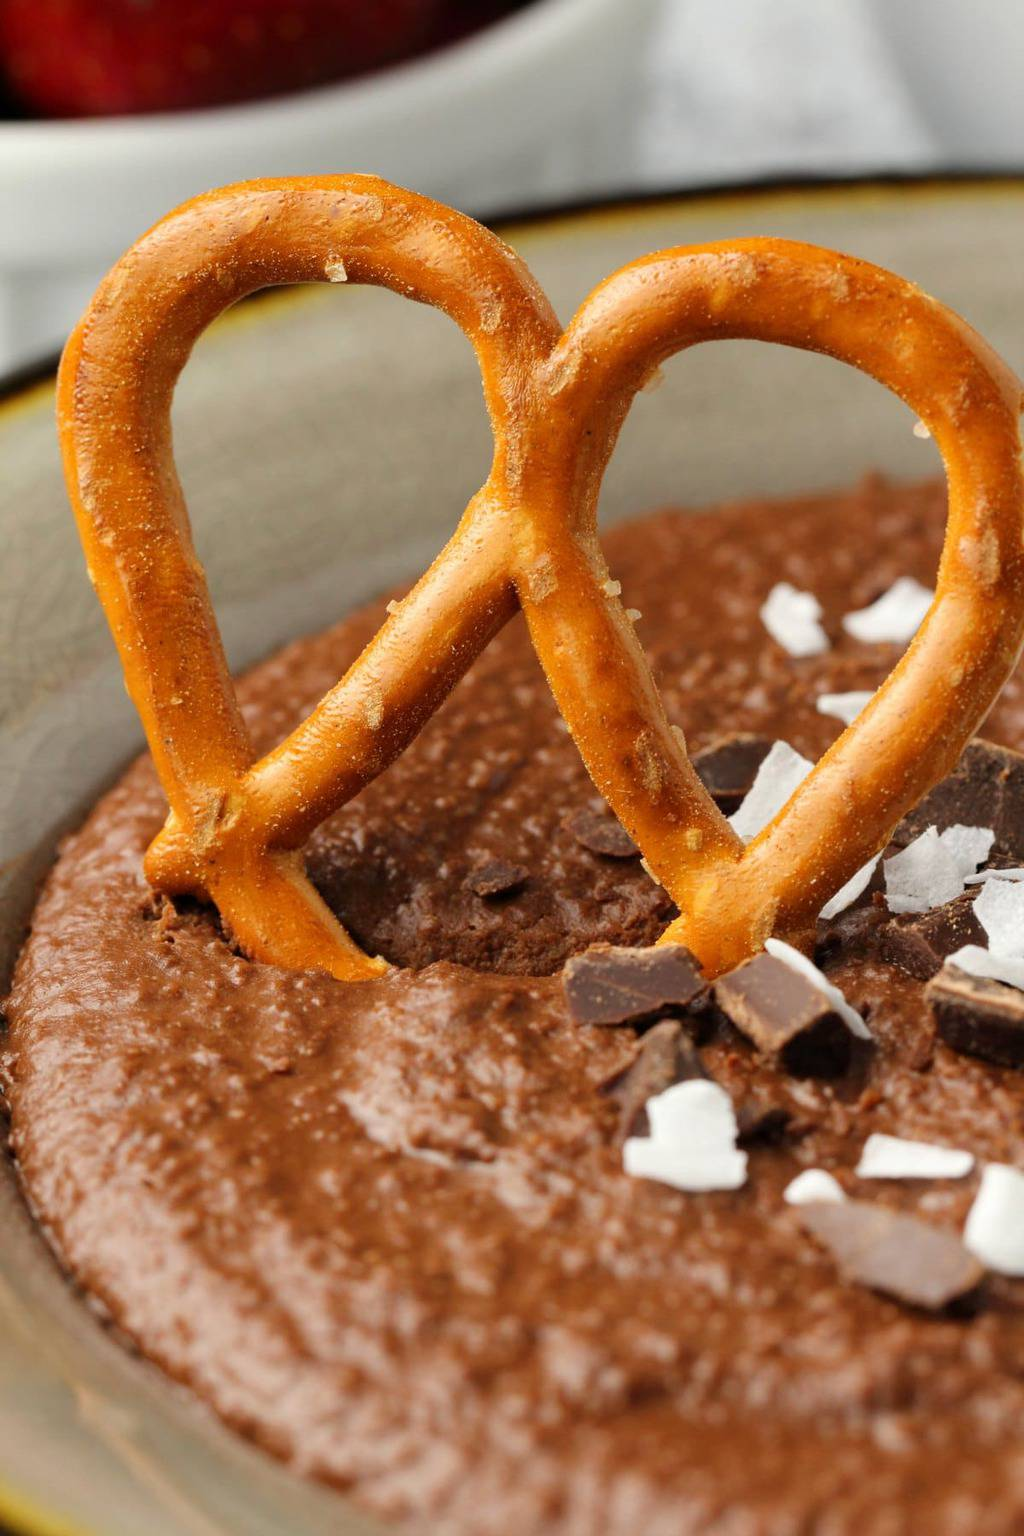 A pretzel dipping into a bowl of chocolate dessert hummus.